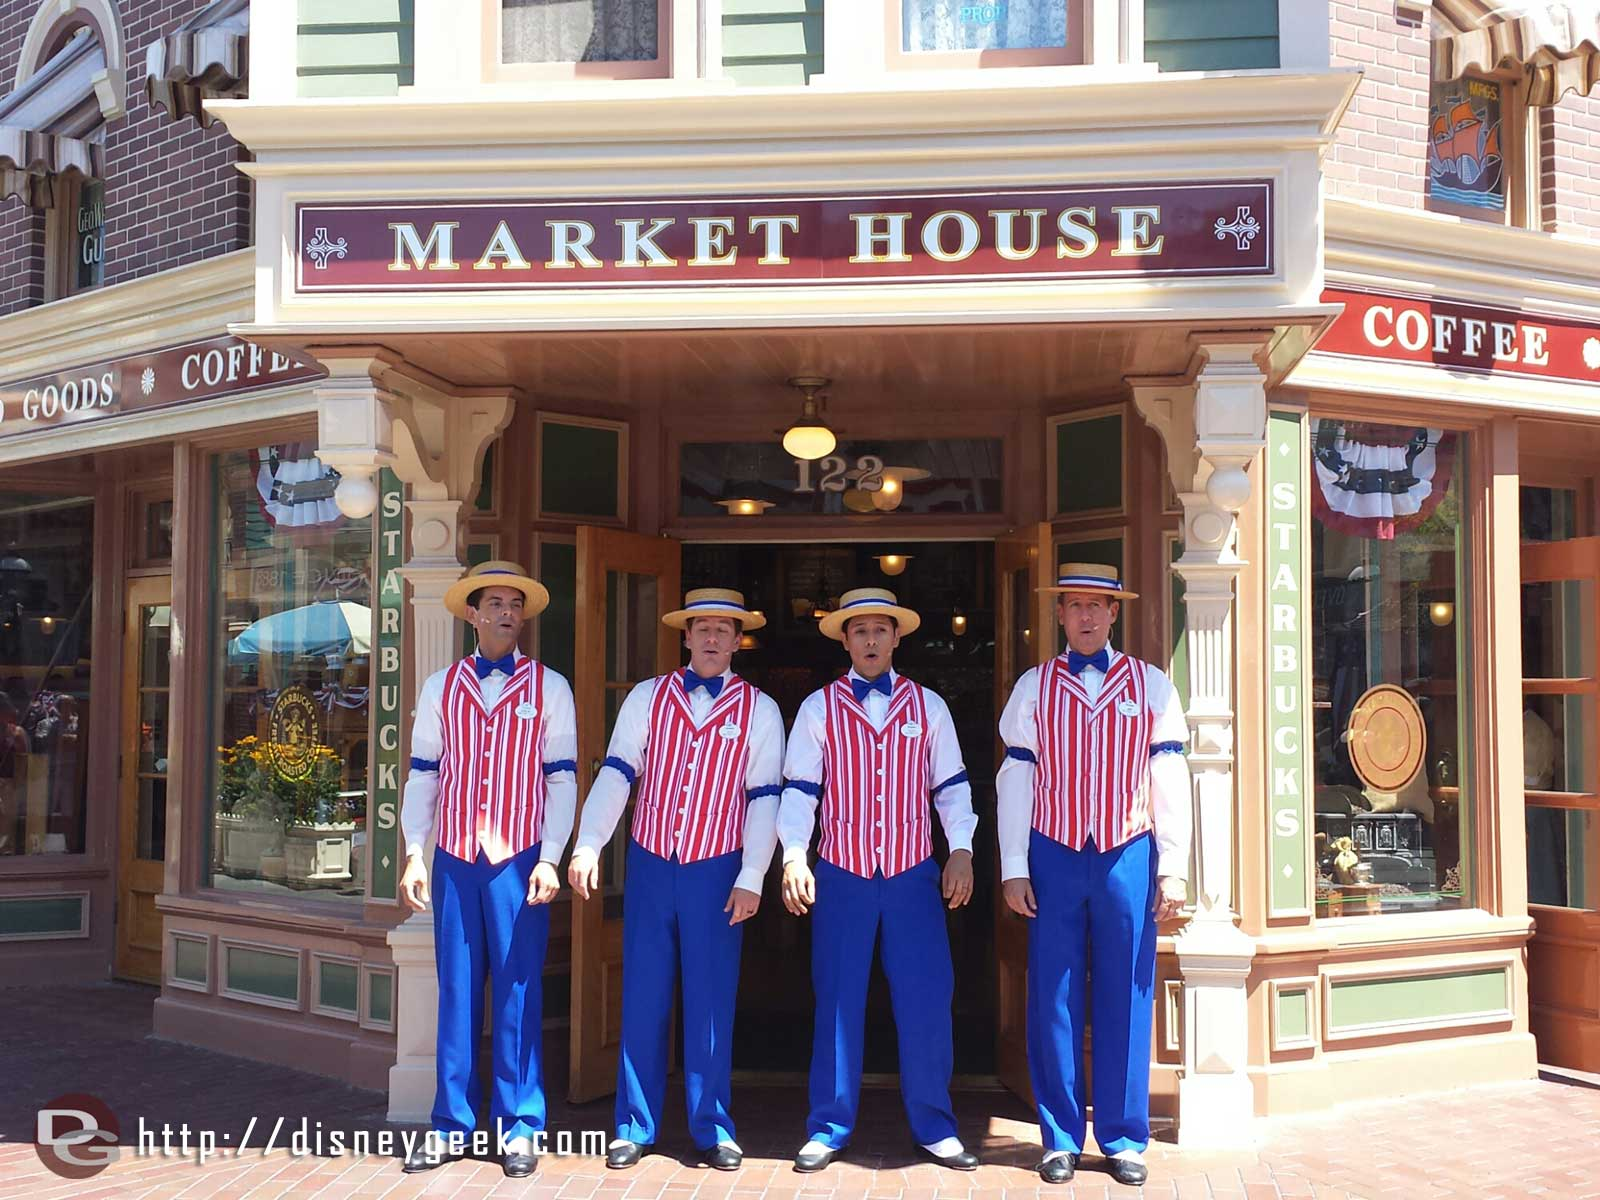 The Dapper Dans of Disneyland sporting their patriotic outfits today.